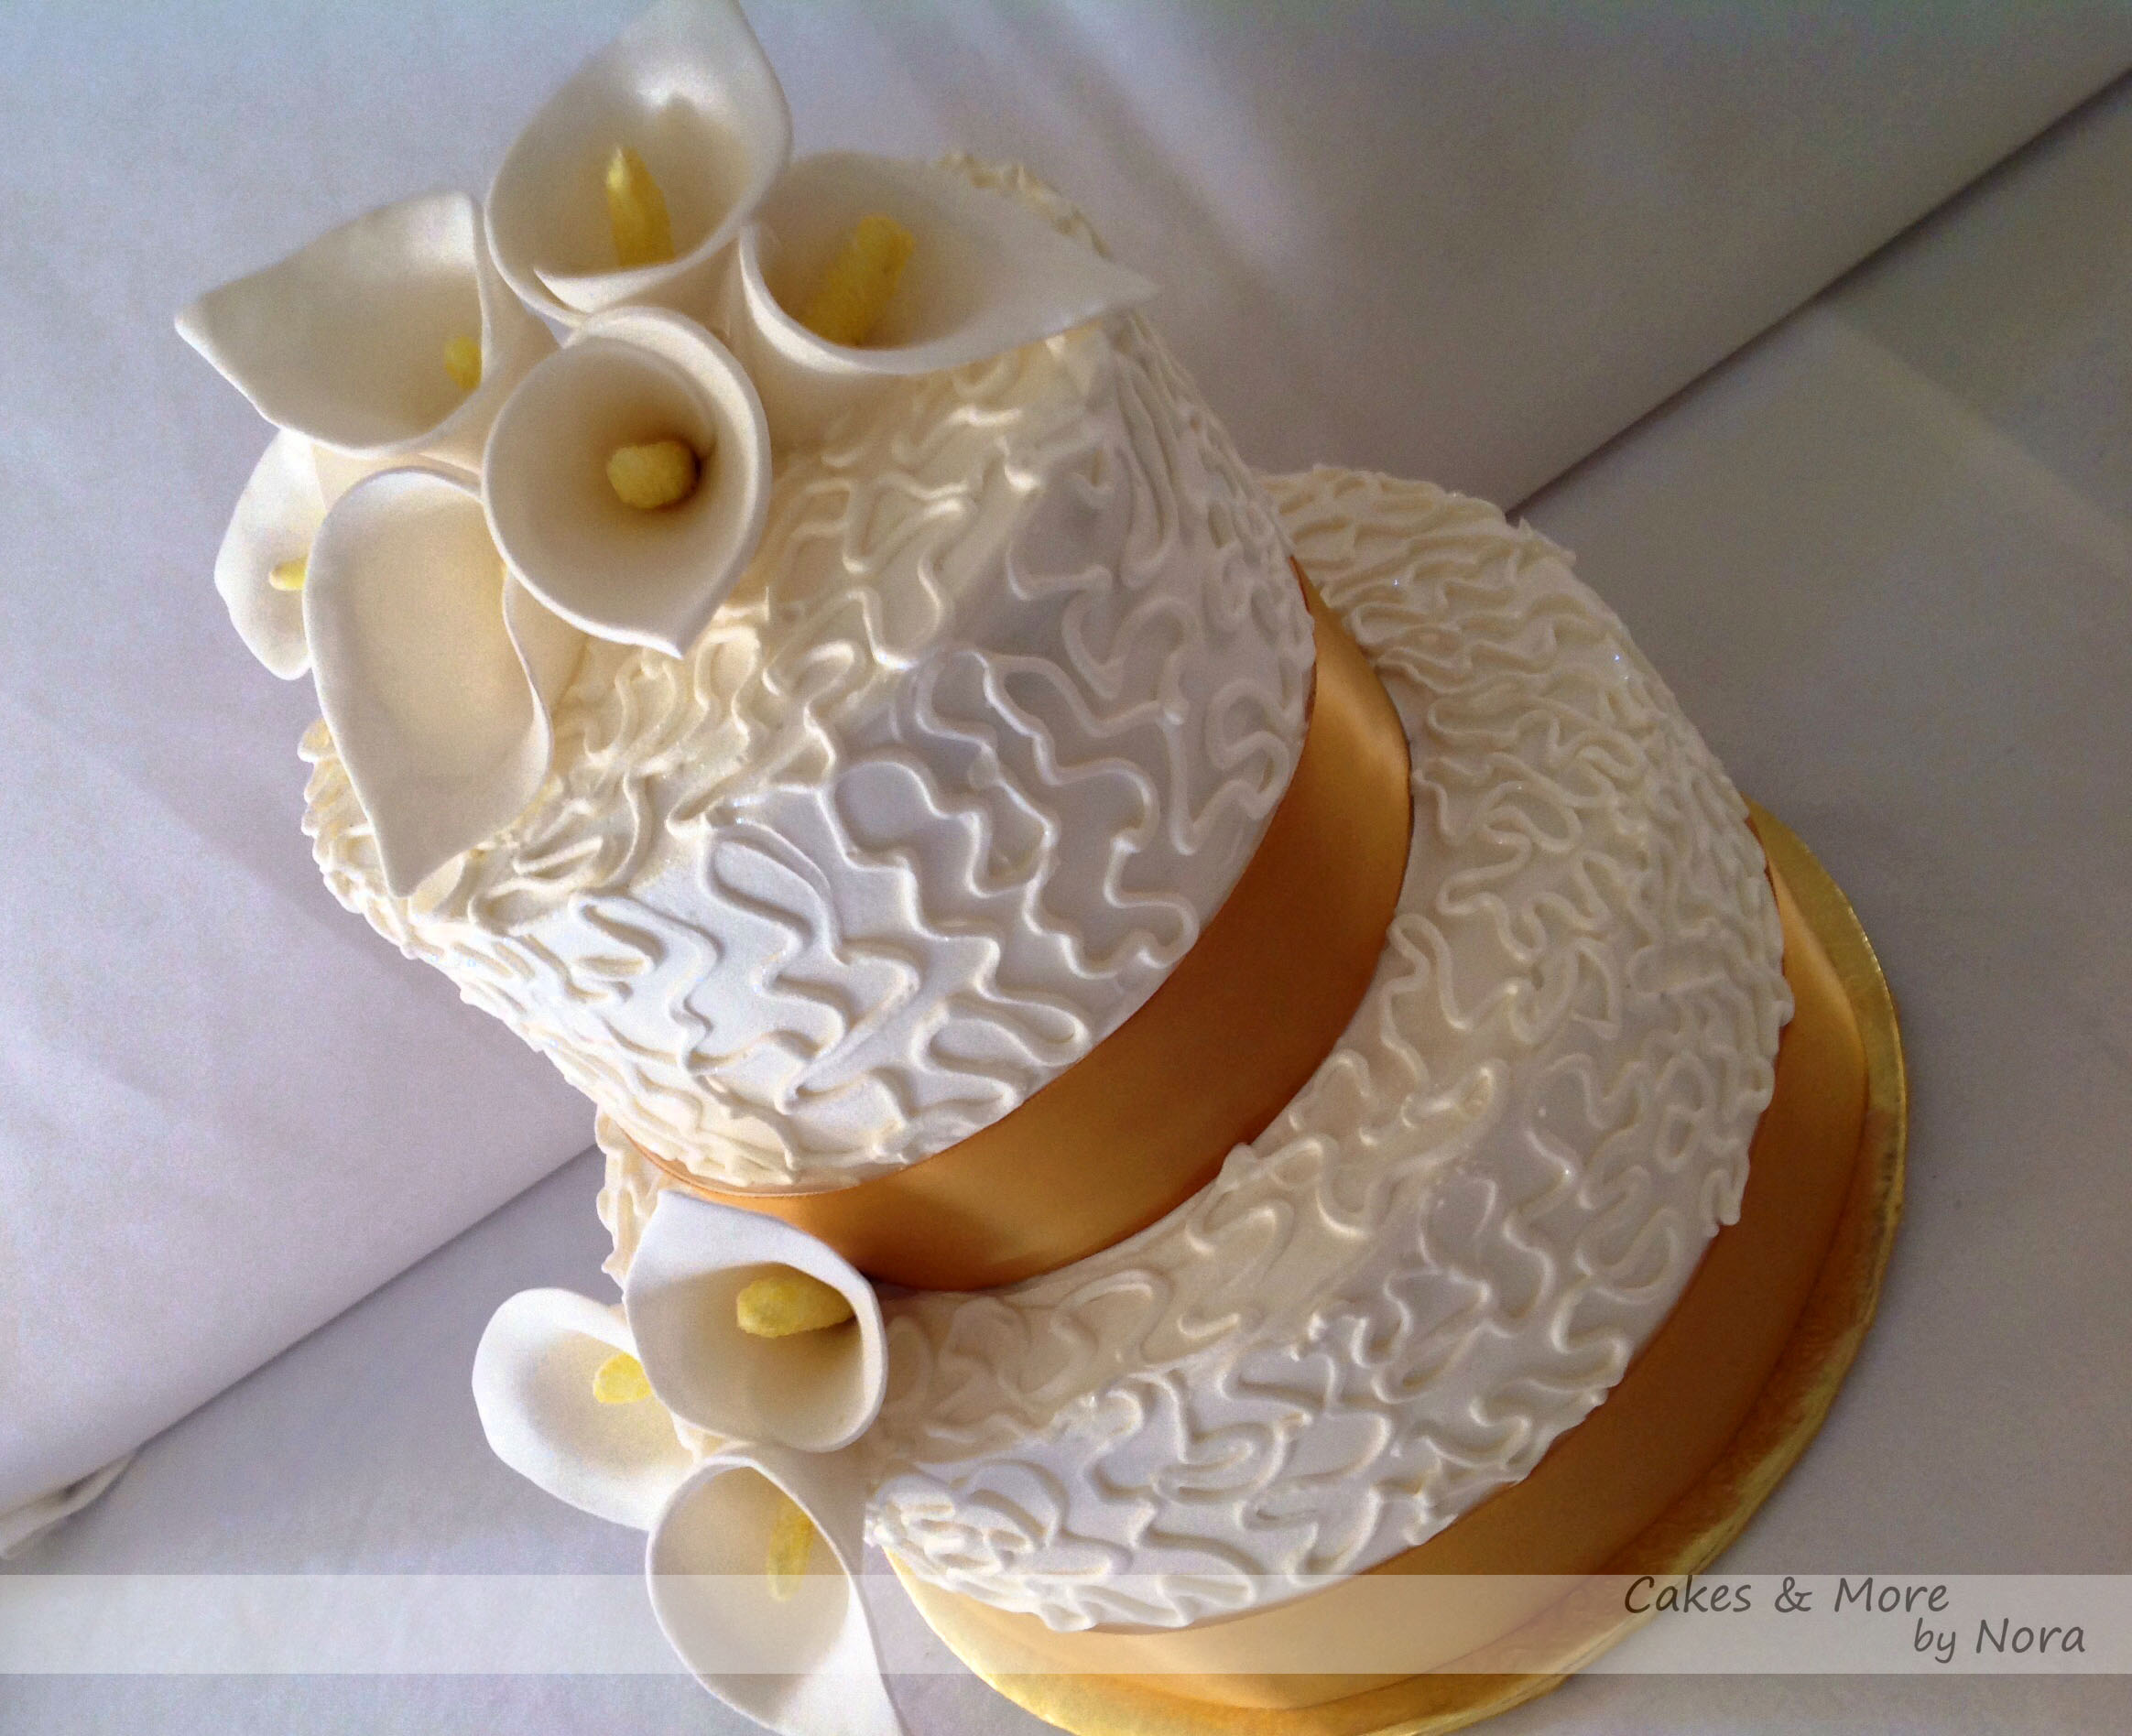 Golden Wedding Anniversary Cakes with Flowers